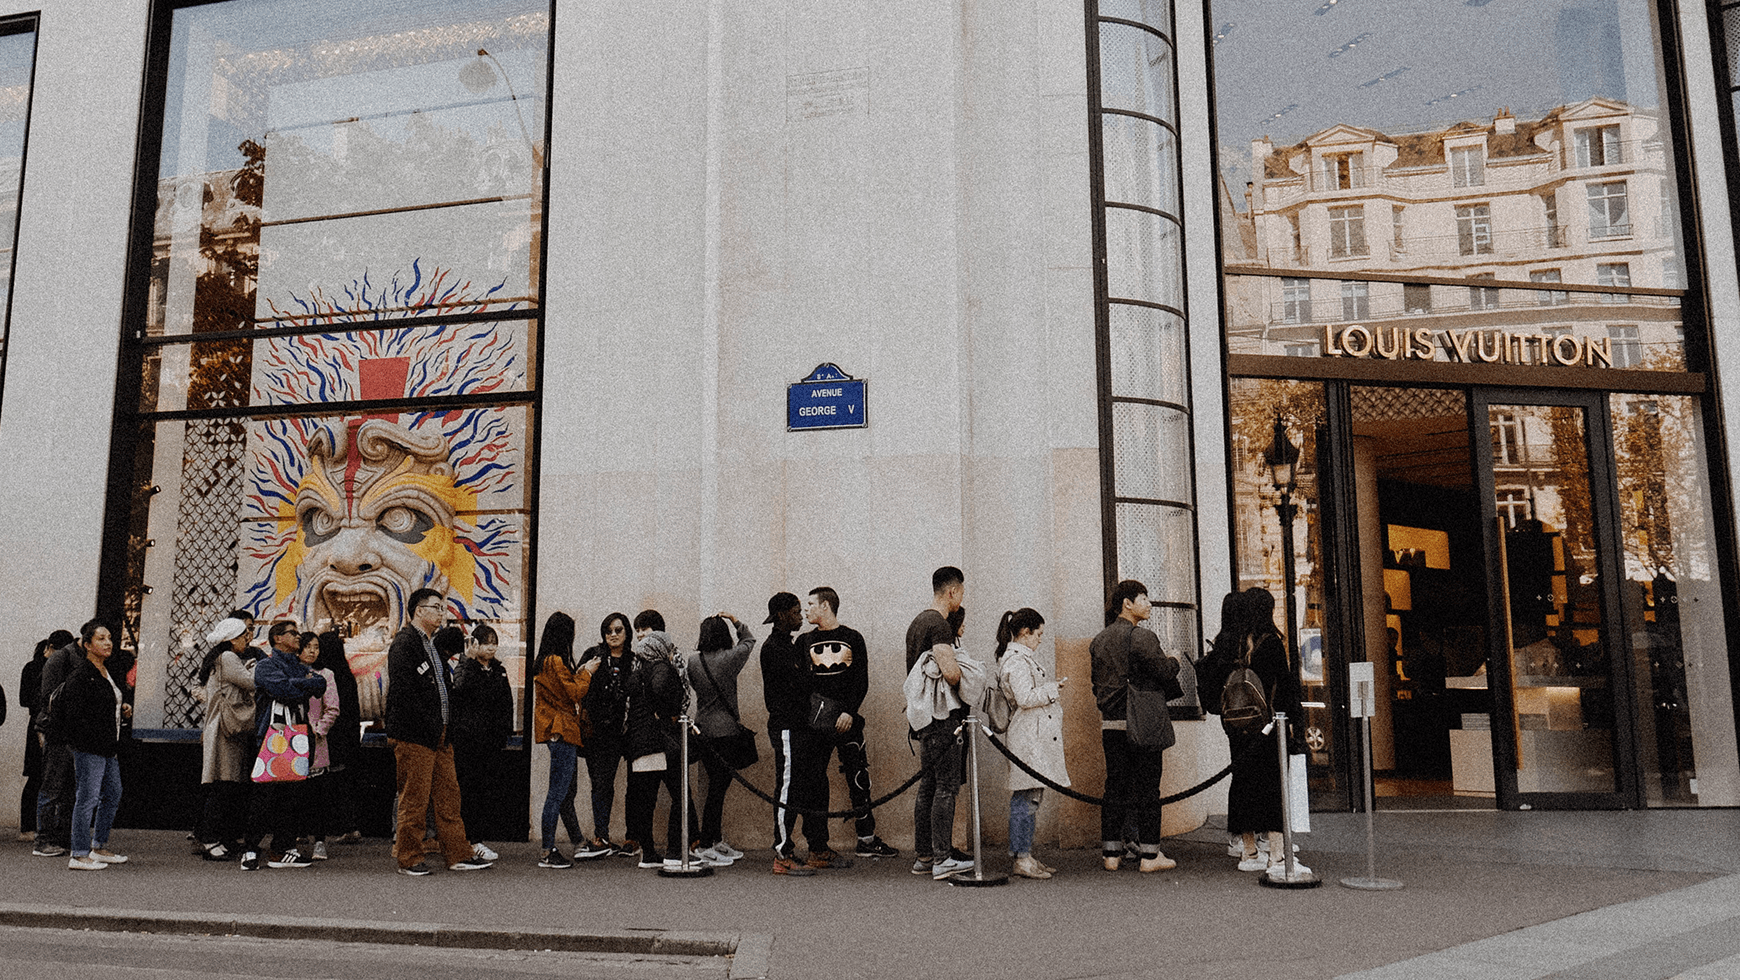 minit-how-to-optimize-order-to-cash-with-process-mining-queue-before-louis-vuitton-store-in-paris